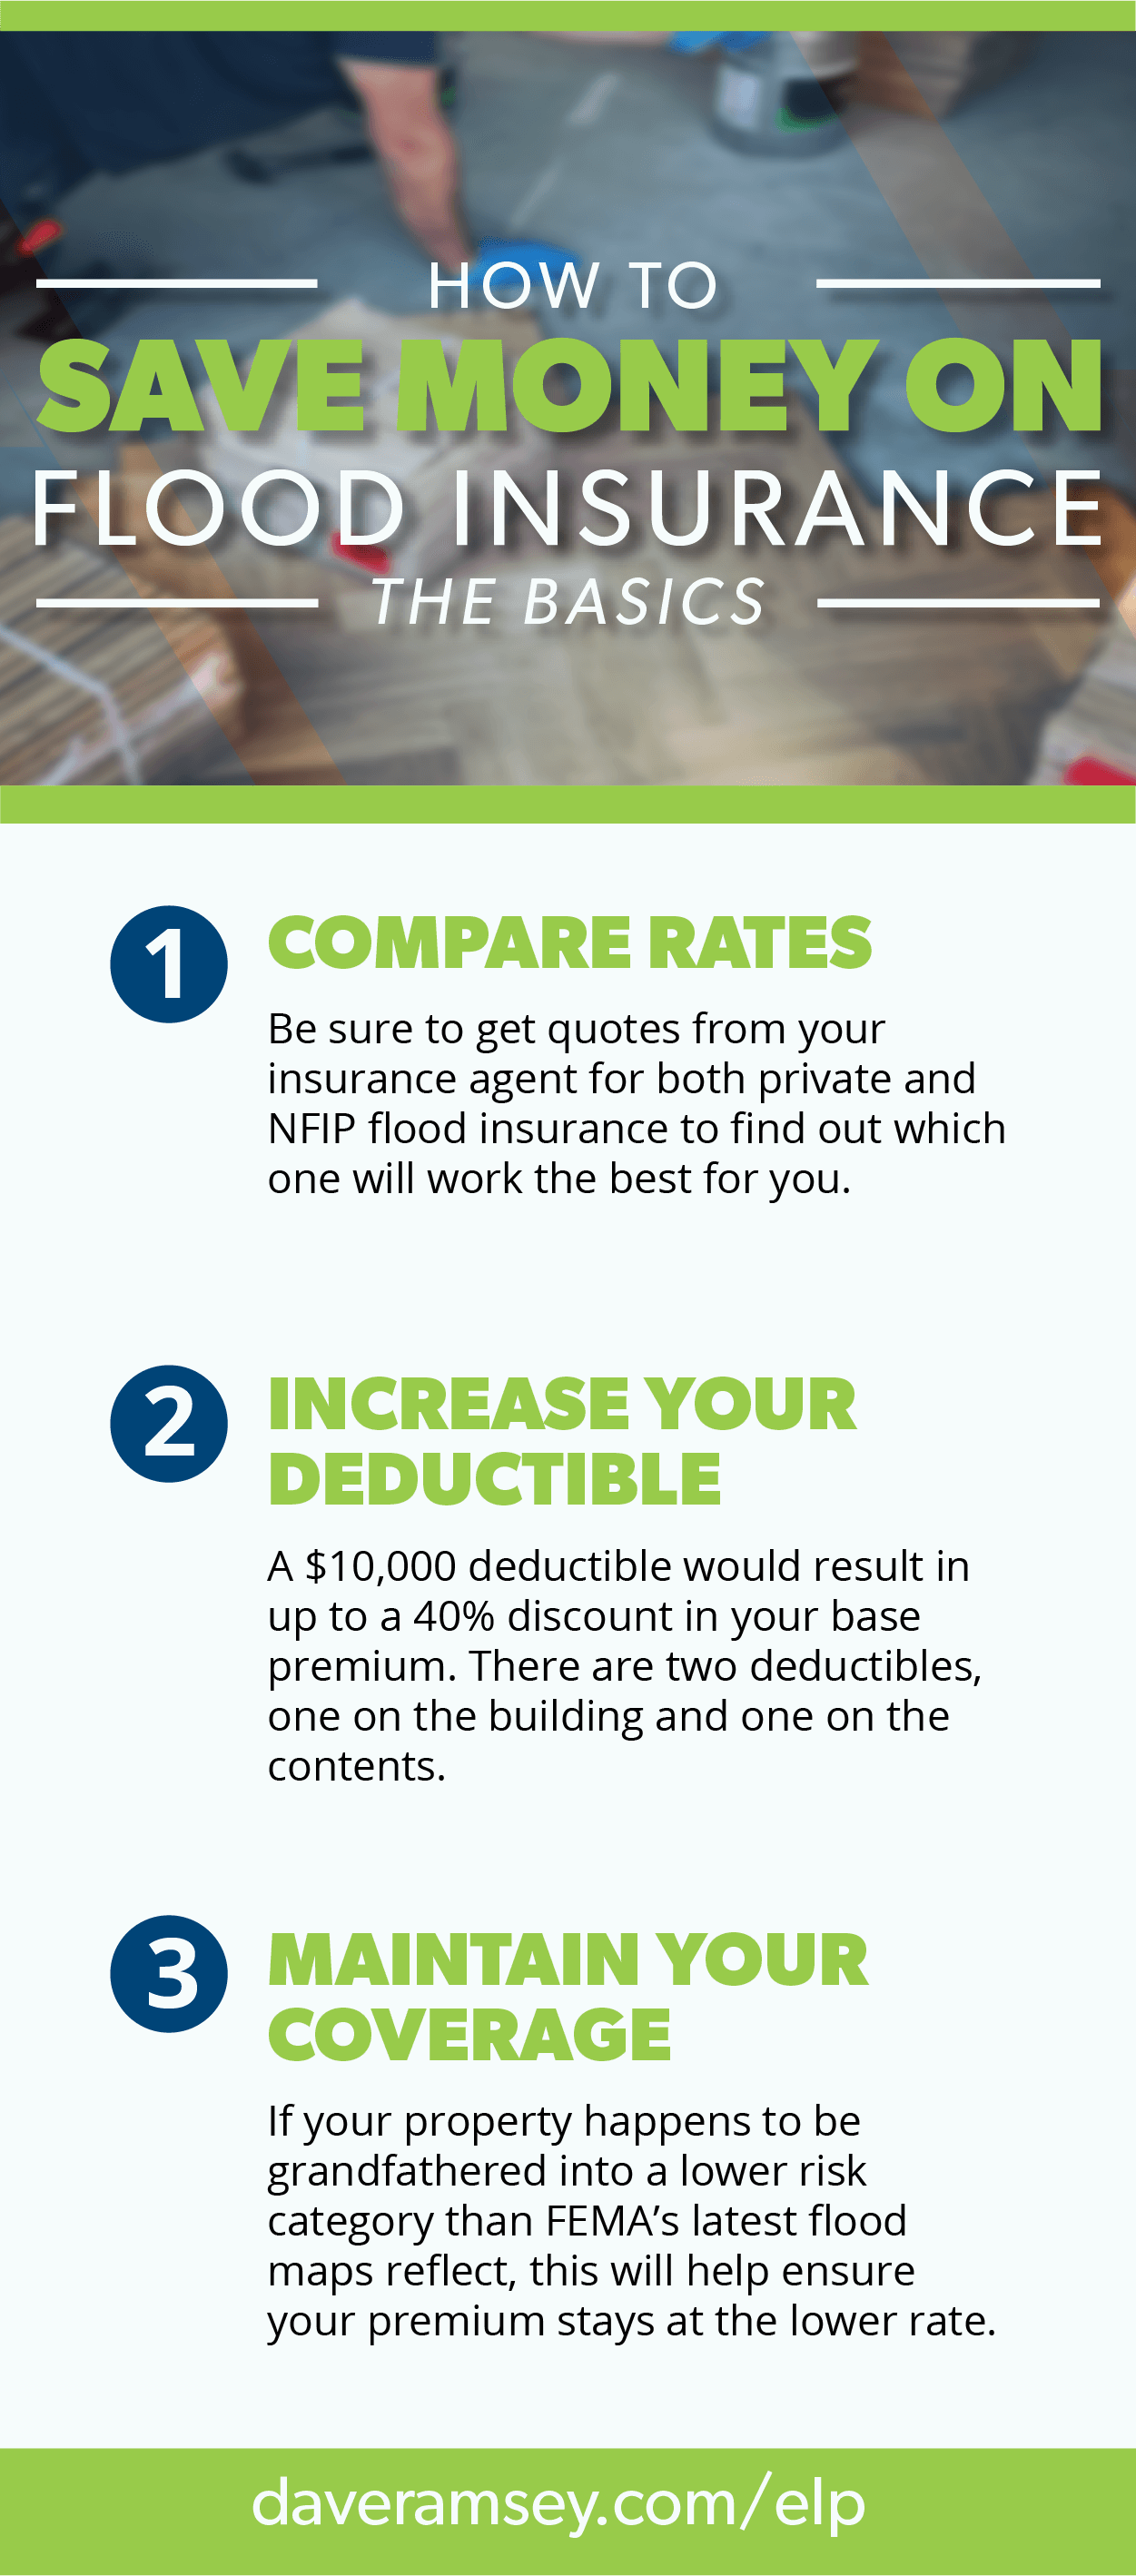 Fema Flood Insurance Quote The Basics Of Flood Insurance  Home  Pinterest  Flood Insurance